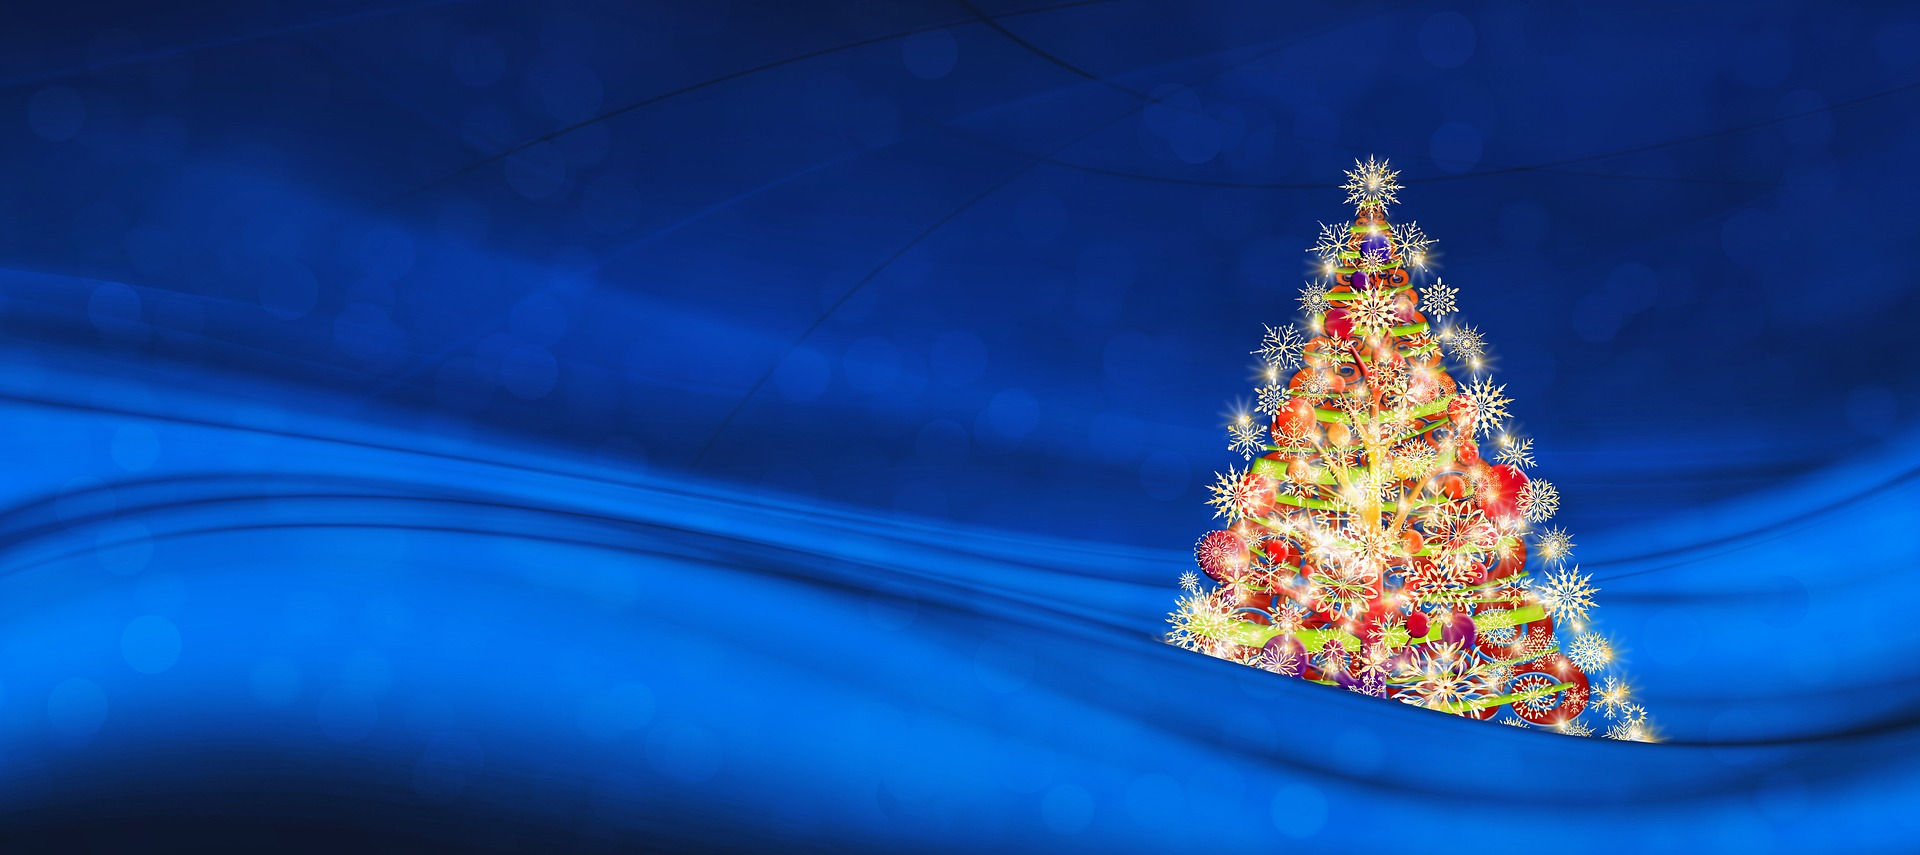 Carols by the Sea - 2020 Christmas Events for the Family